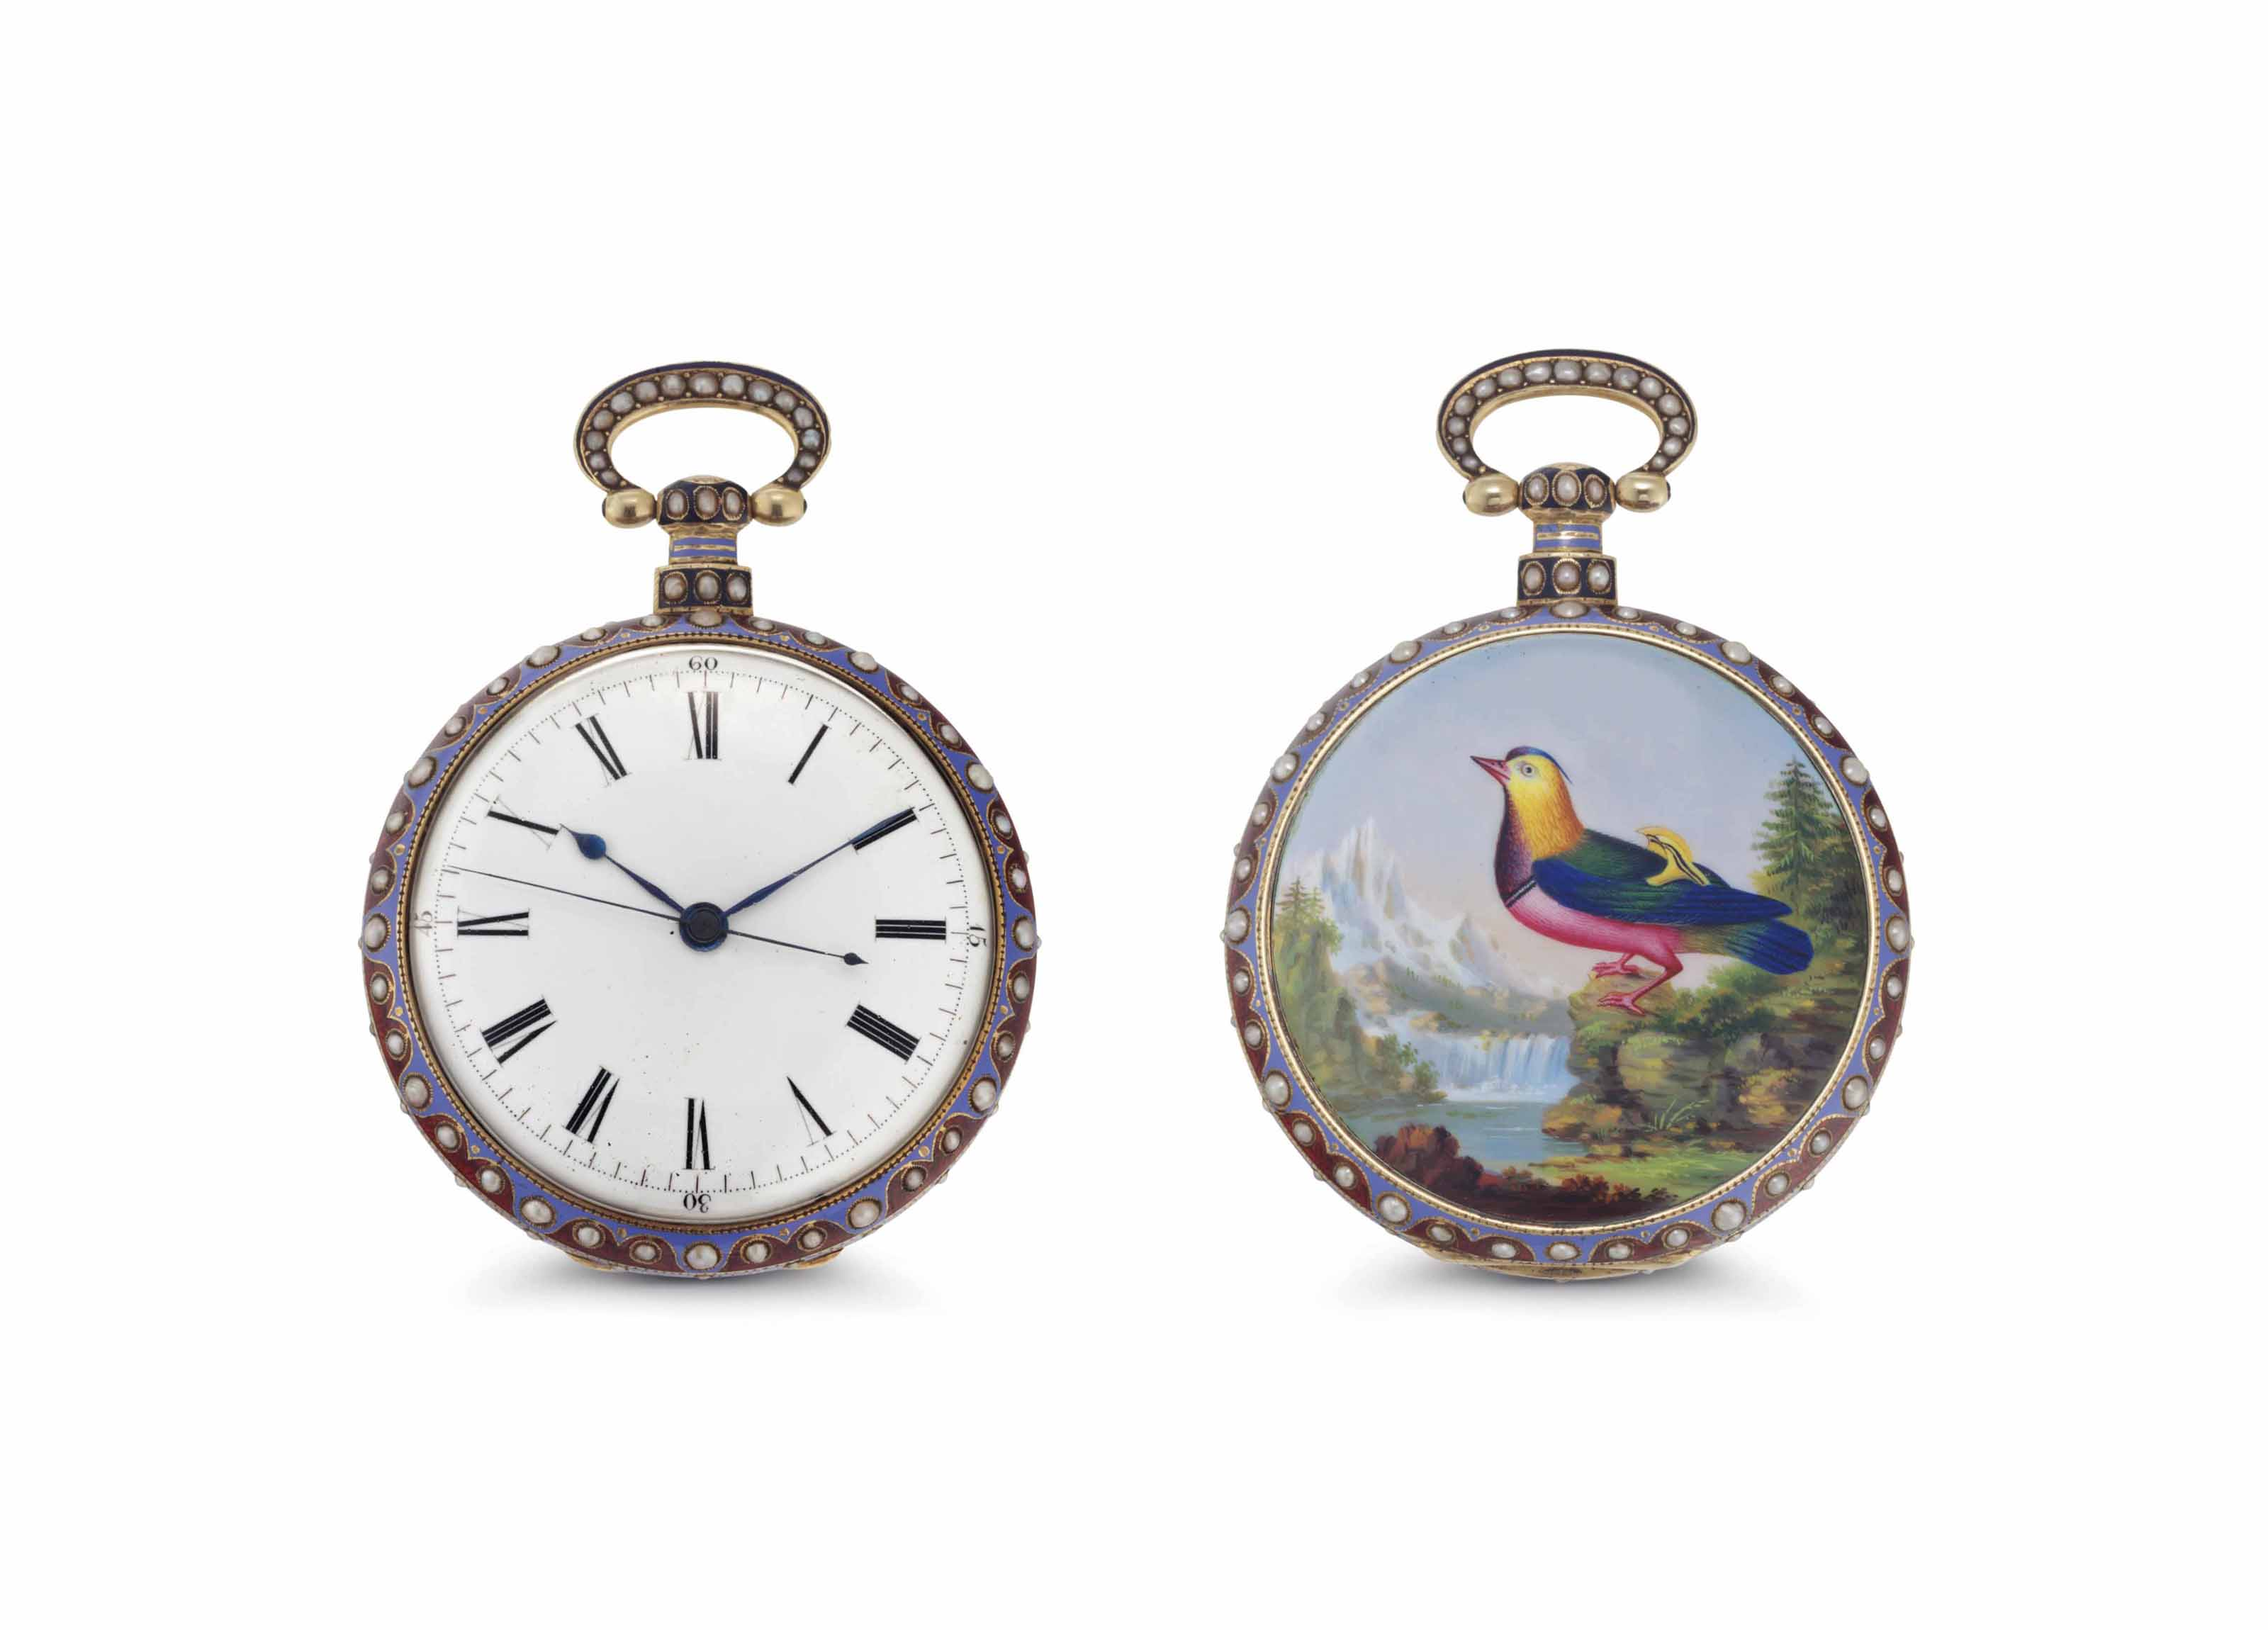 Bovet Fleurier. A Fine and Rare 18k Gold, Enamel and Pearl-set Openface Duplex Pocket Watch with Center Seconds Made for the Chinese Market